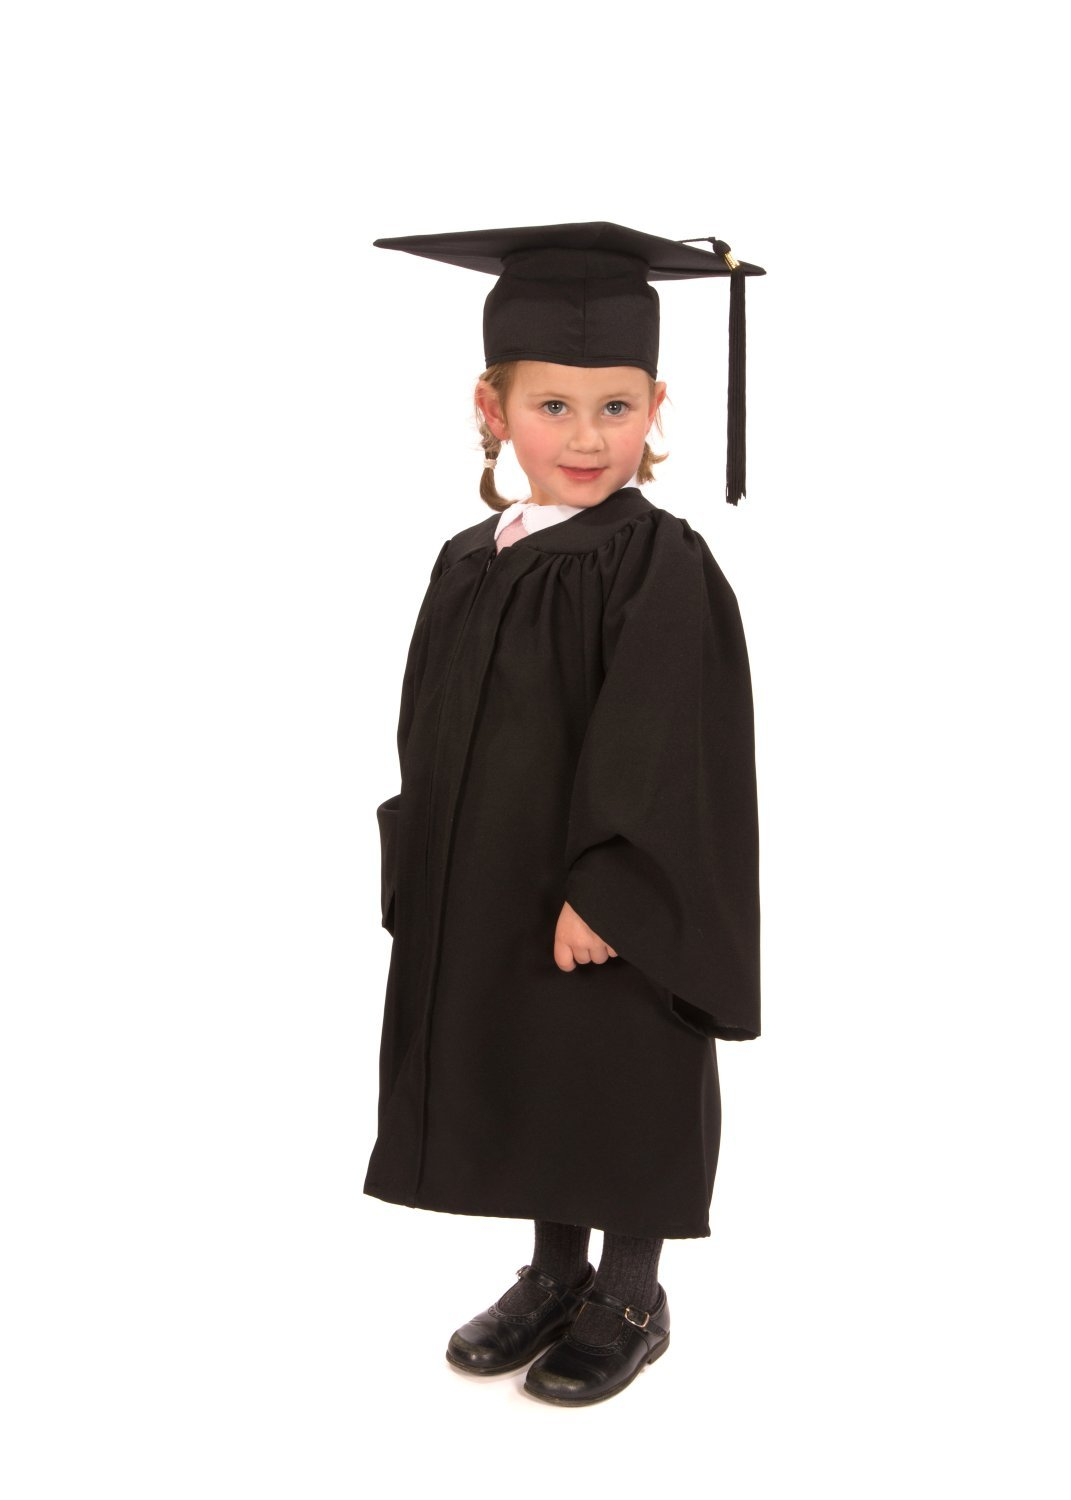 GraduatePro Graduation Gown Kids and Cap Nursery with 2020 Tassel Set Outfit Childs